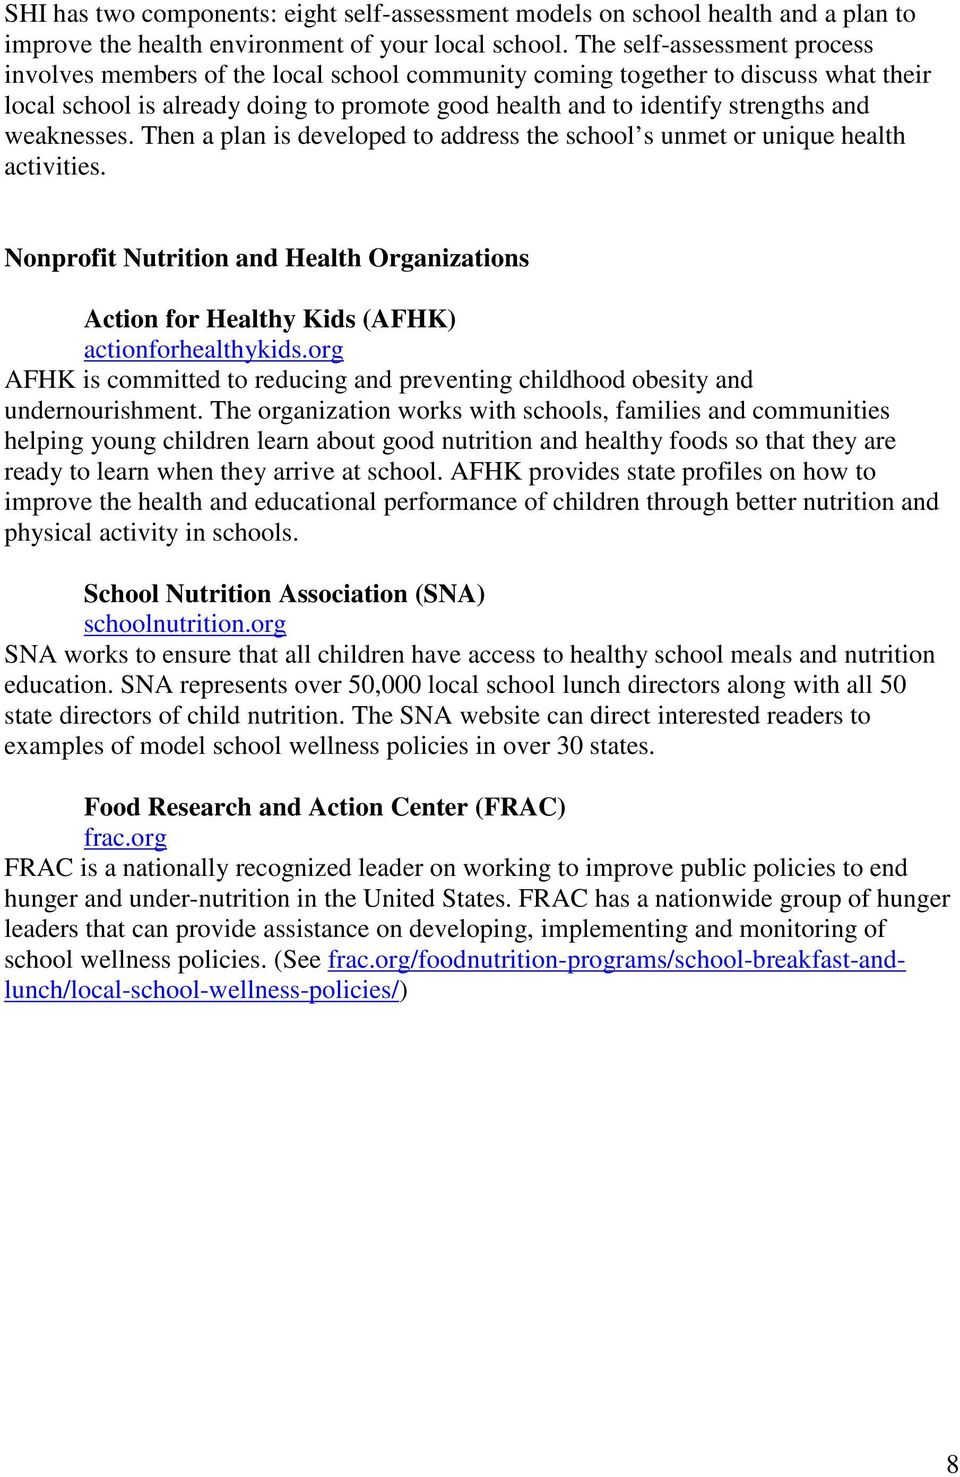 weaknesses. Then a plan is developed to address the school s unmet or unique health activities. Nonprofit Nutrition and Health Organizations Action for Healthy Kids (AFHK) actionforhealthykids.